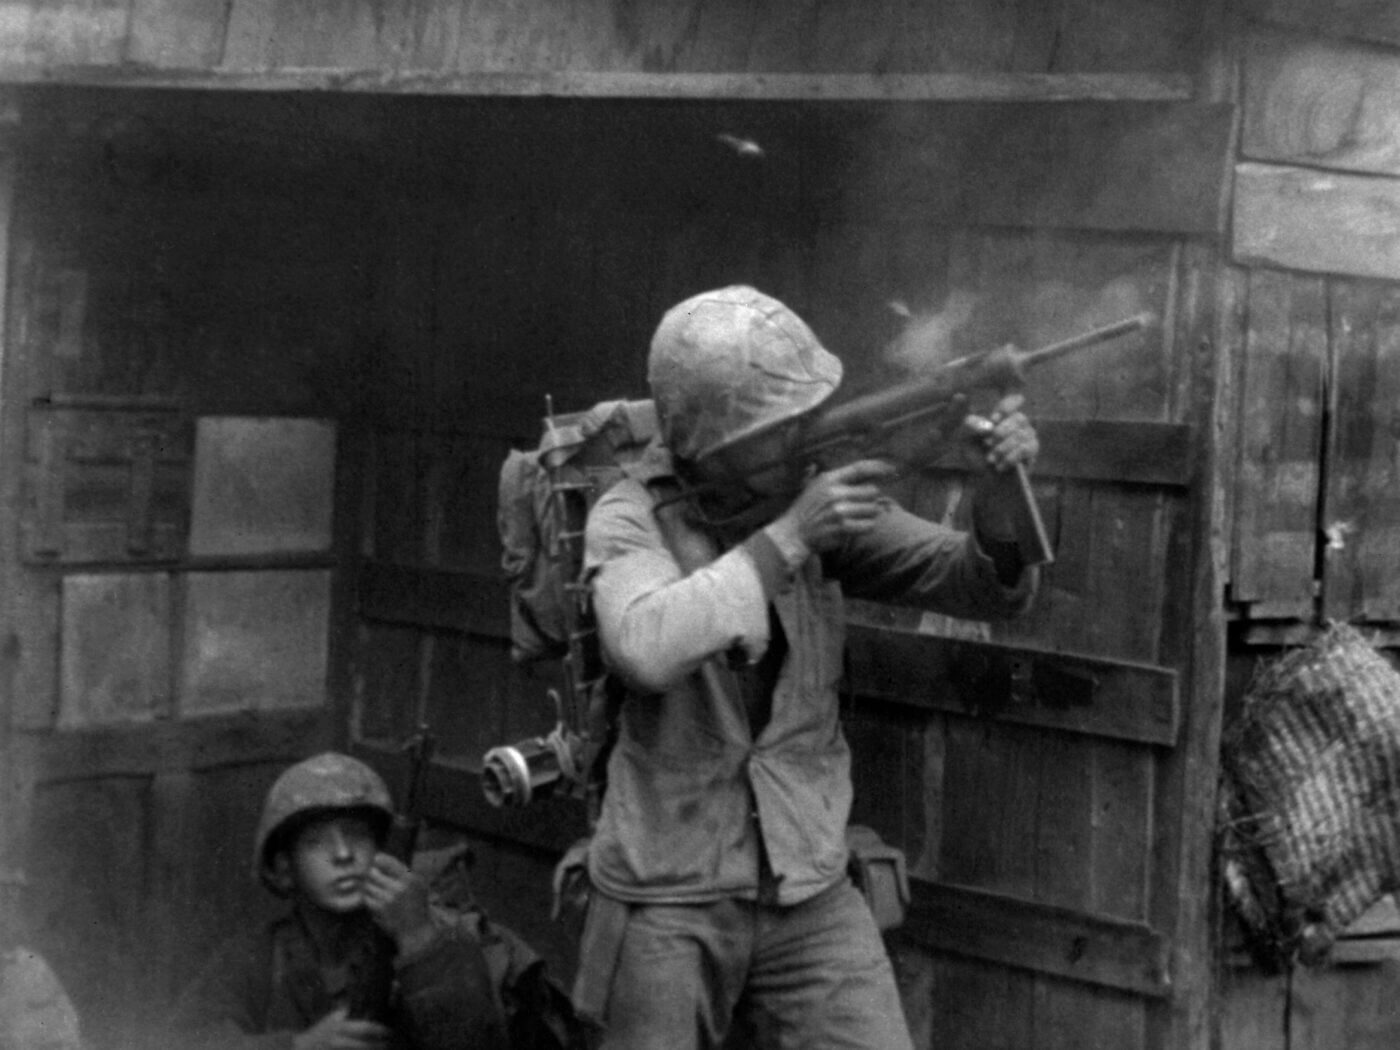 A Marine engages communist snipers during the Battle of Seoul during September 1950.